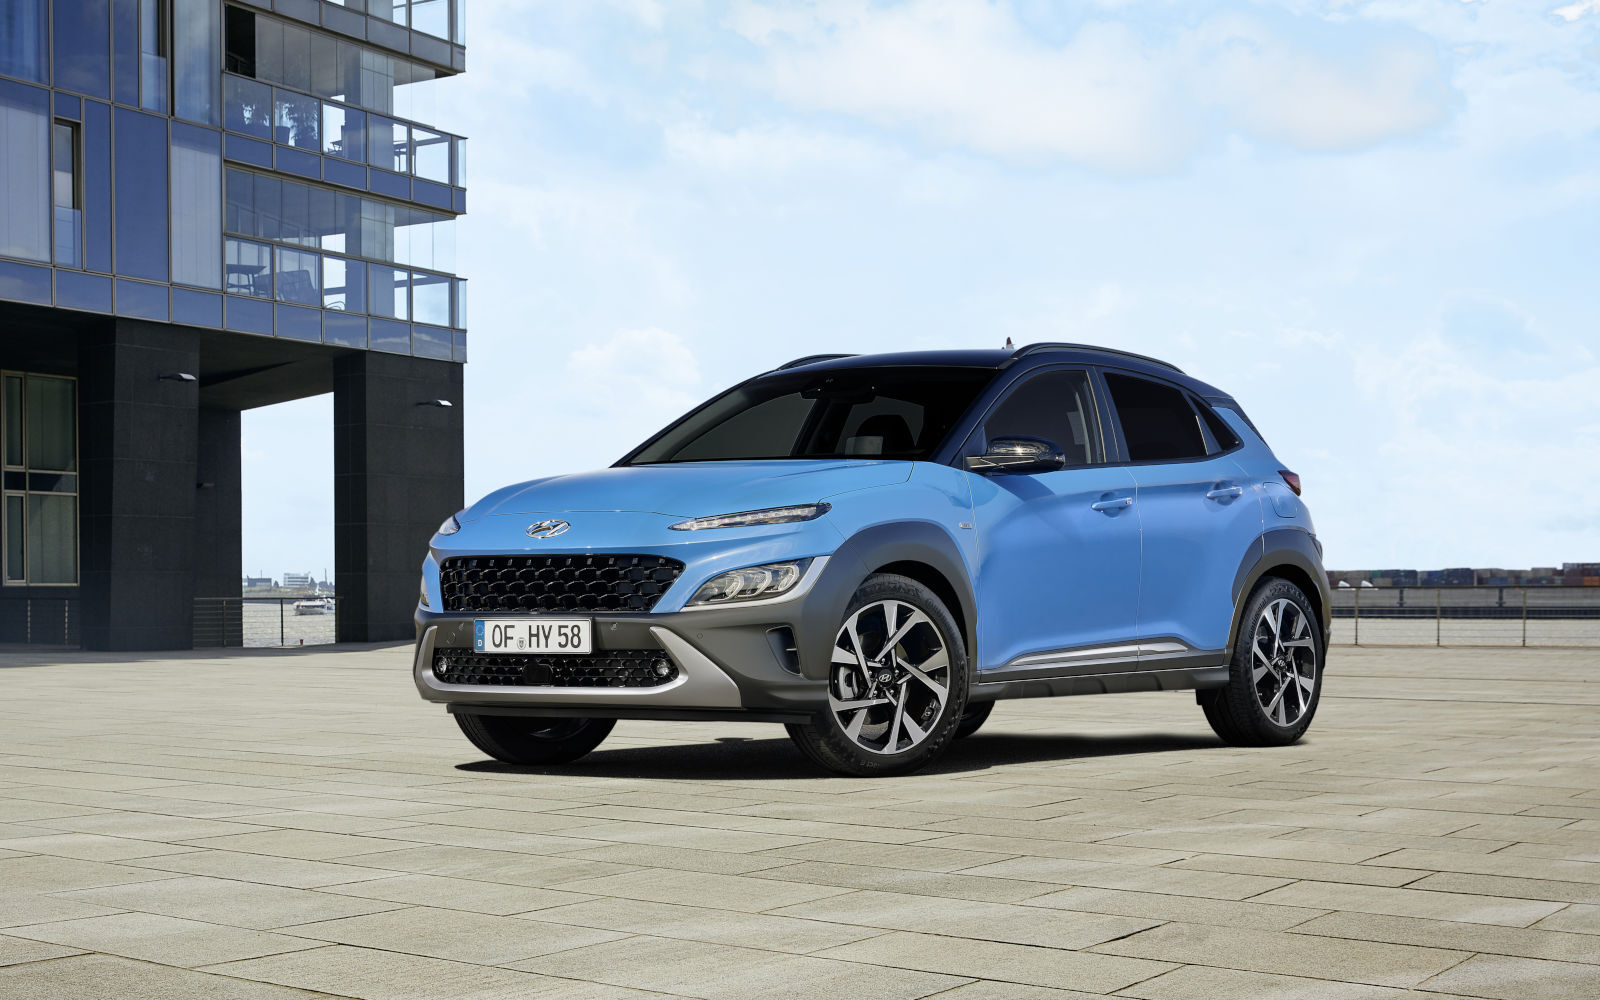 Toyota and honda are leading car manufacturers known for packaging performance, comfort, and quality at a reasonable price. 2021 Hyundai Kona facelift & new Kona N Line unveiled